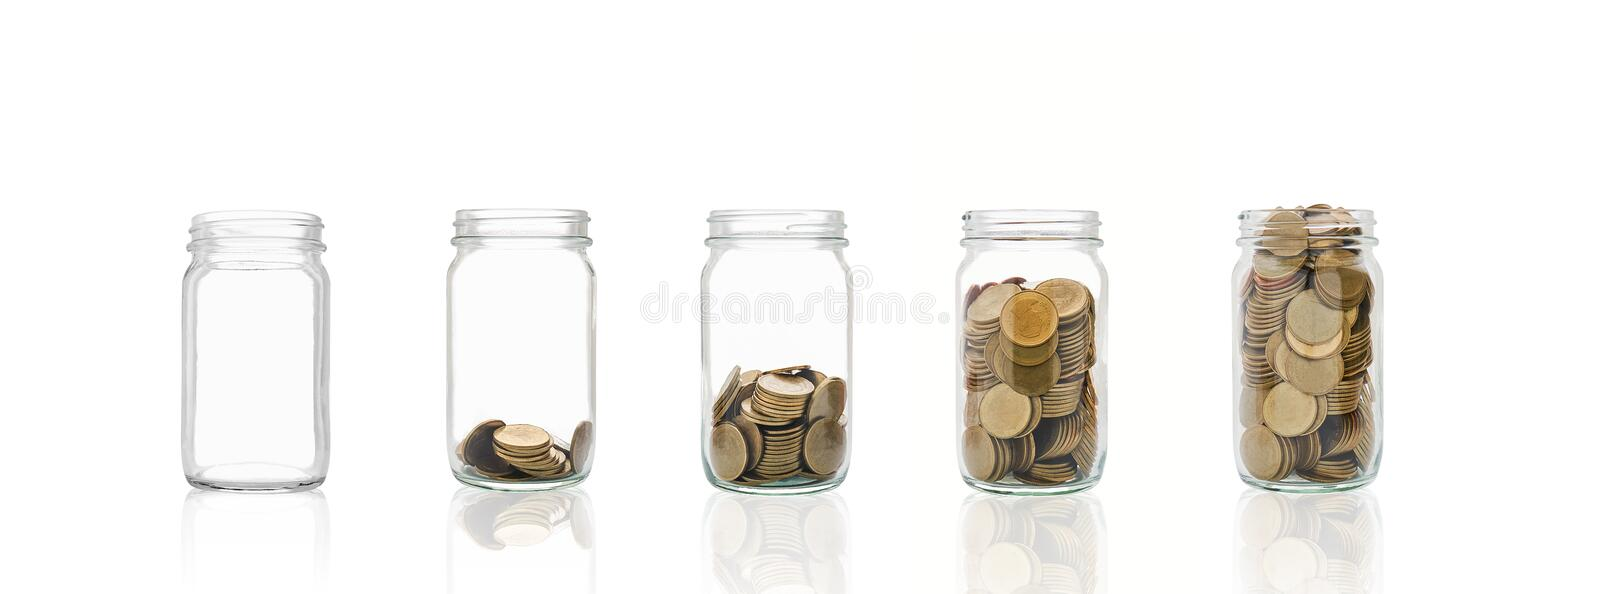 Coins in a bottle, Represents the financial growth. The more money you save, the more you will get. royalty free stock photo